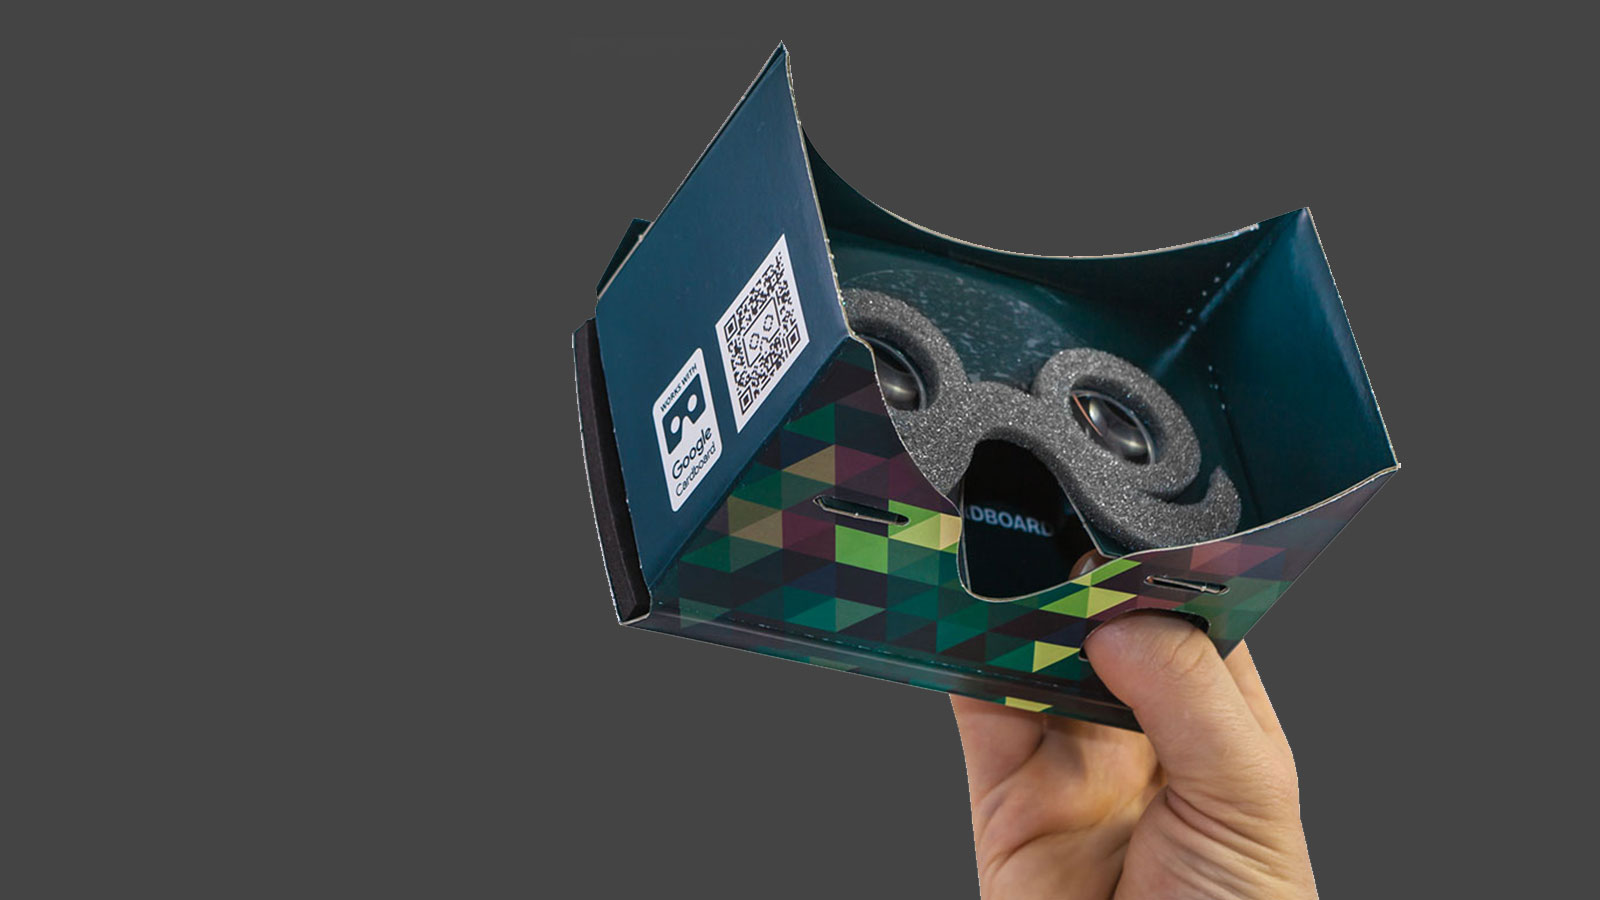 google-cardboard-pop-cardboard-3.0-thumb-cut-out